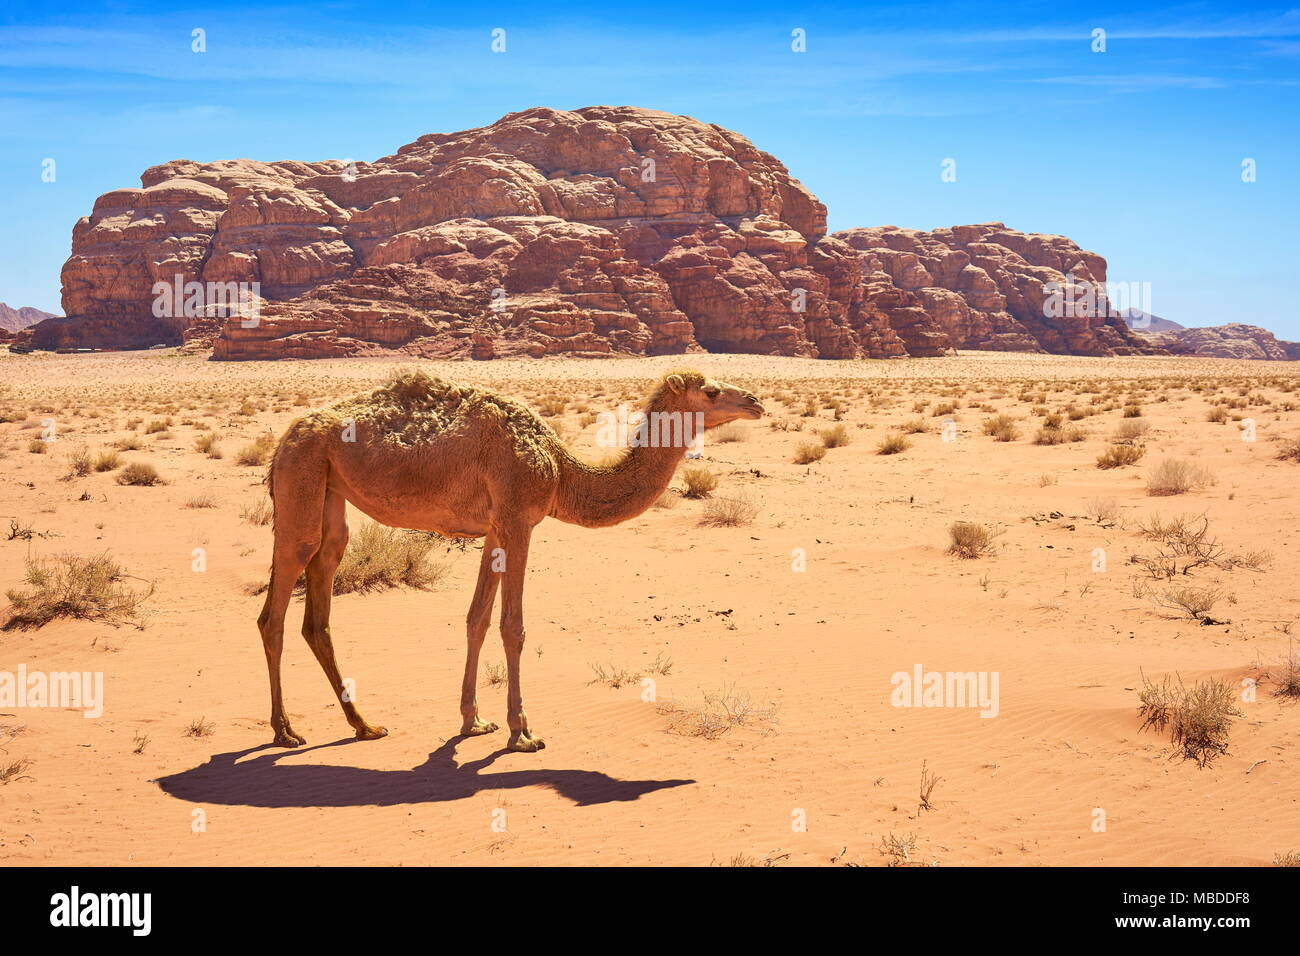 Camel in the Wadi Rum Desert, Jordan - Stock Image